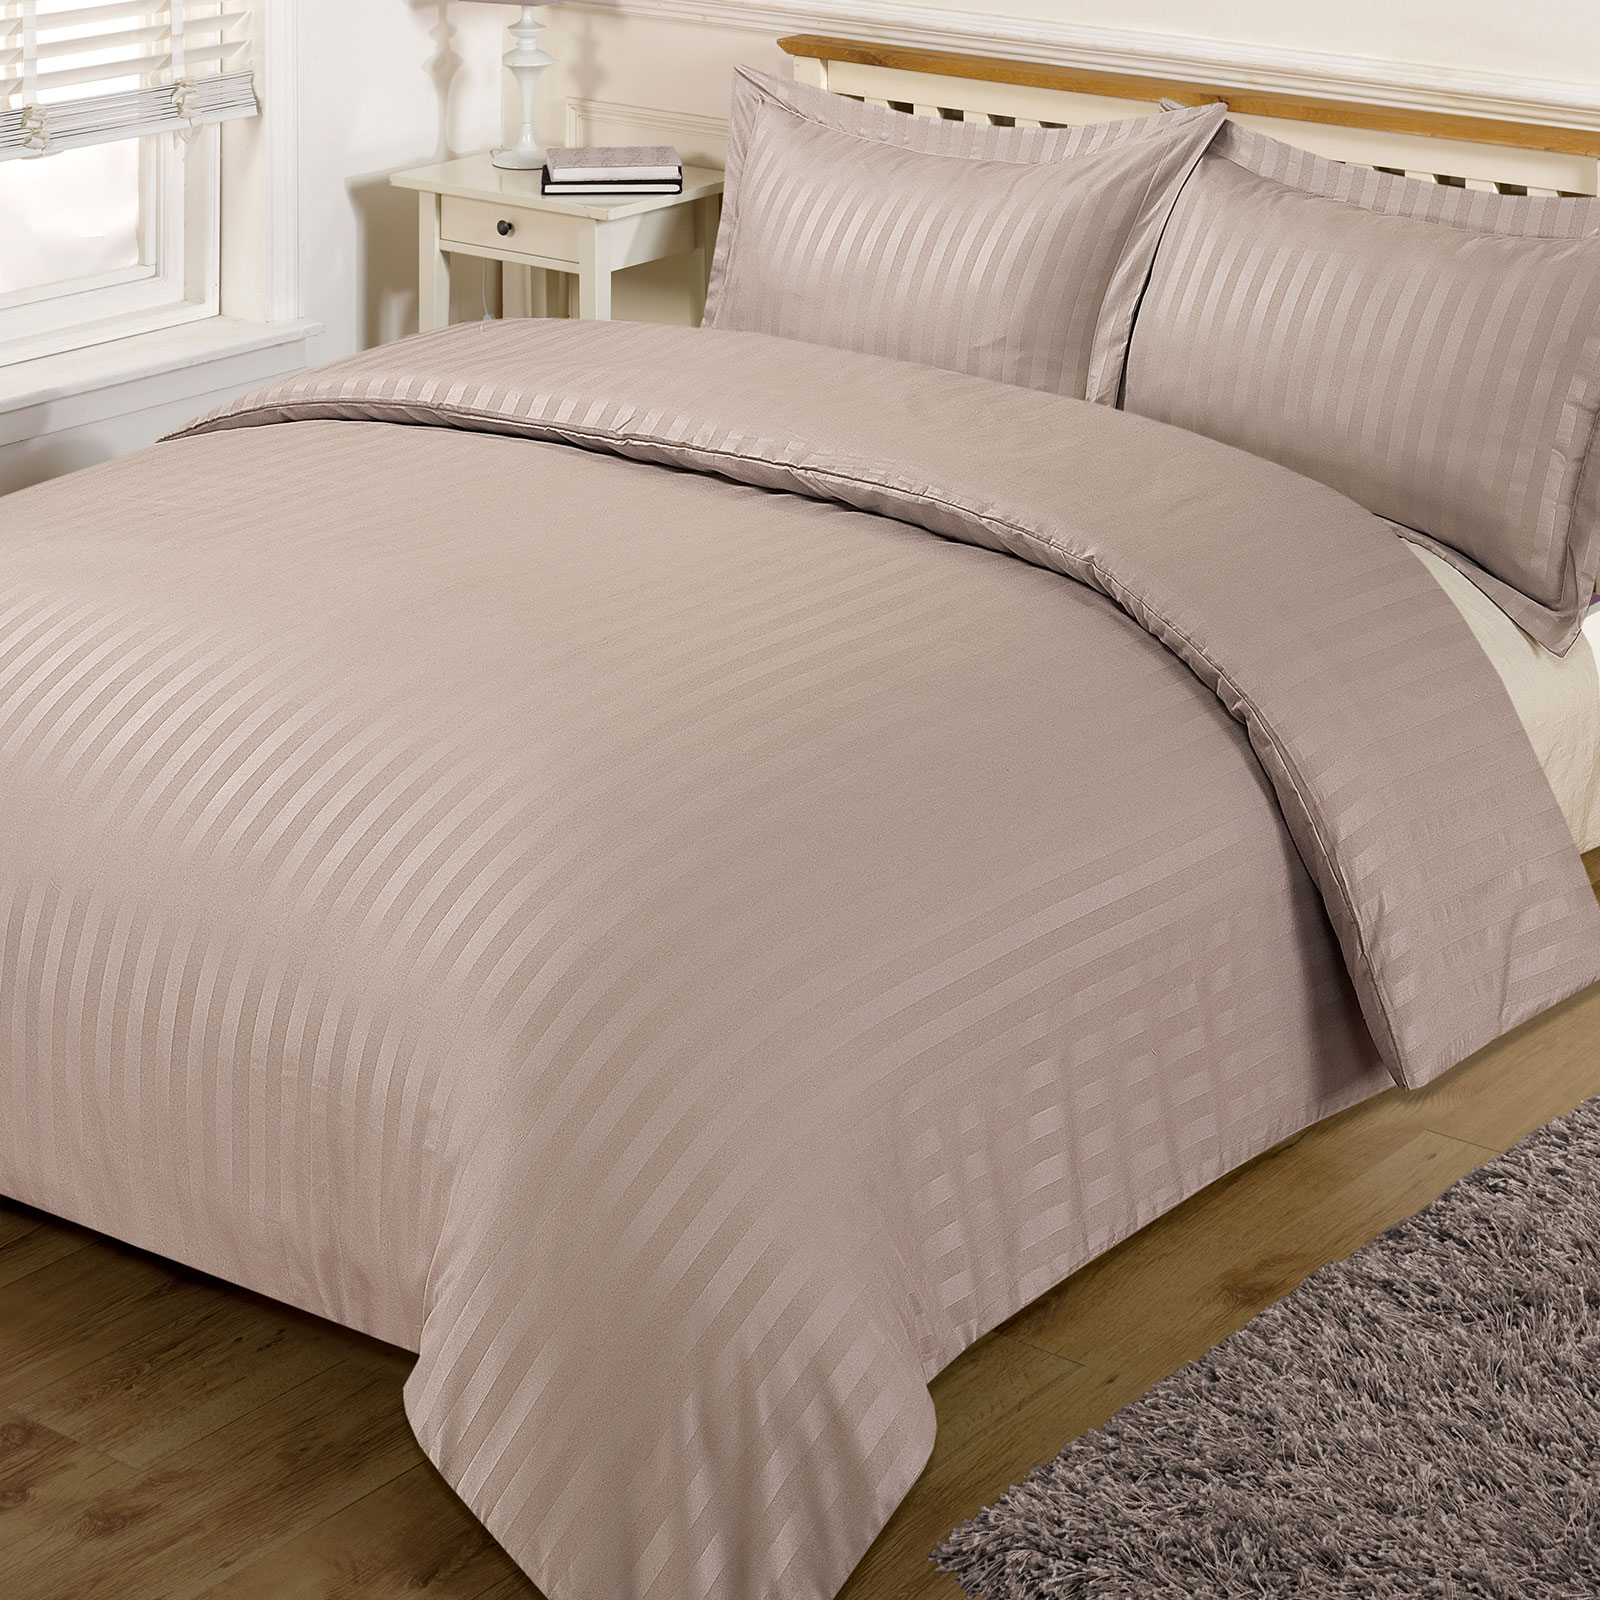 Satin Duvet Cover Details About Brentfords Satin Stripe Quilt Duvet Cover With Pillowcase Set Single Double King